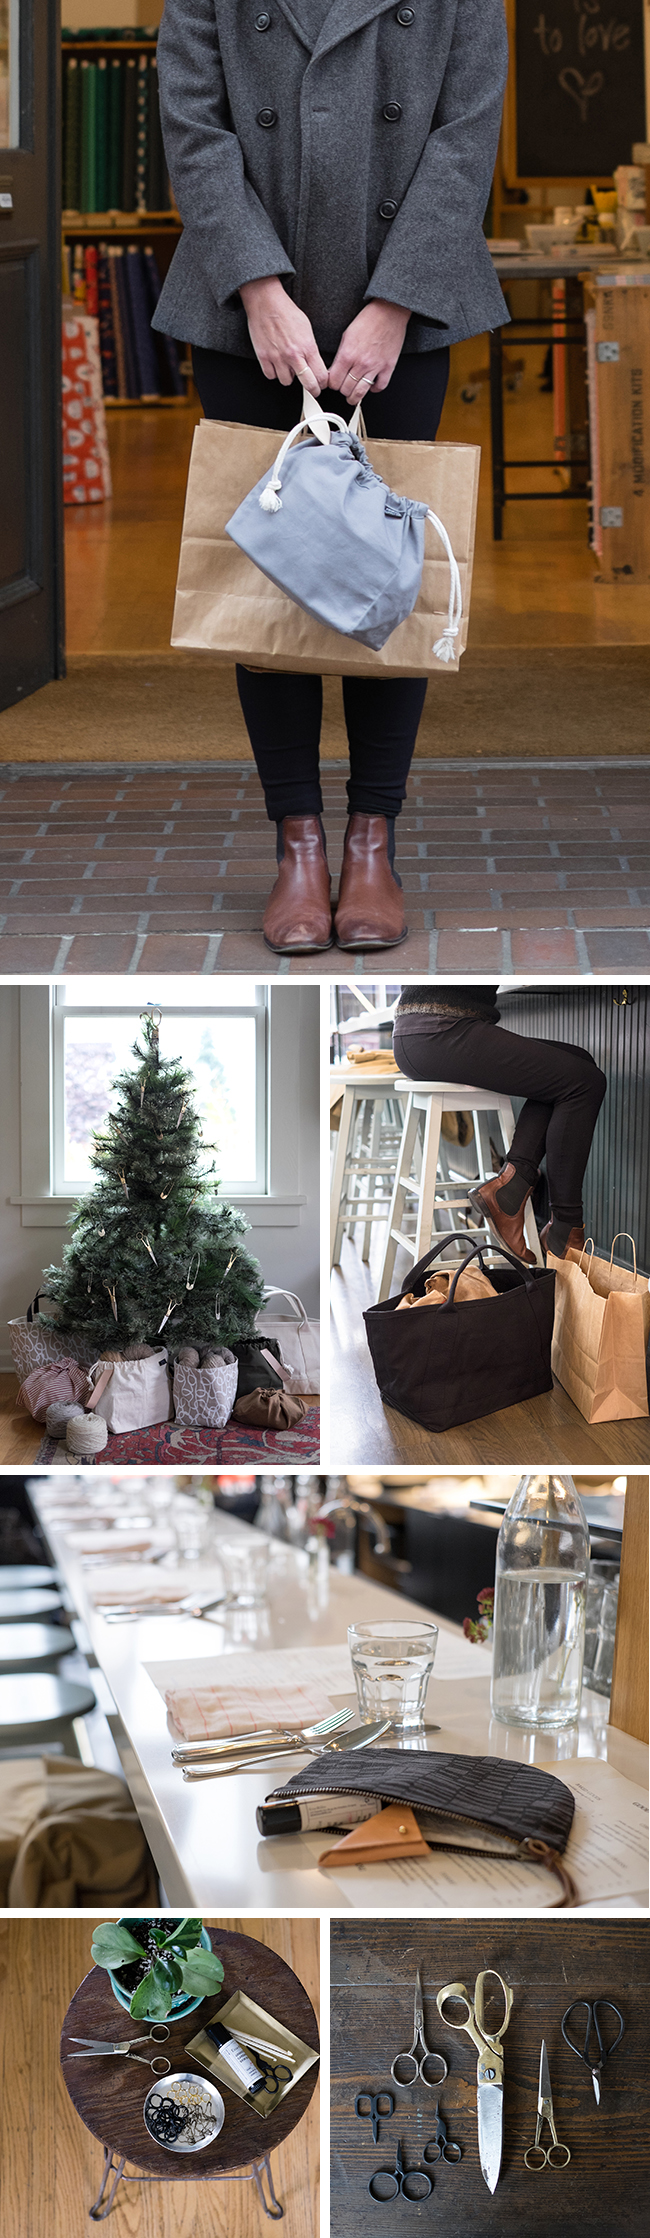 IT'S HERE! The Fringe Holiday Lookbook 2015